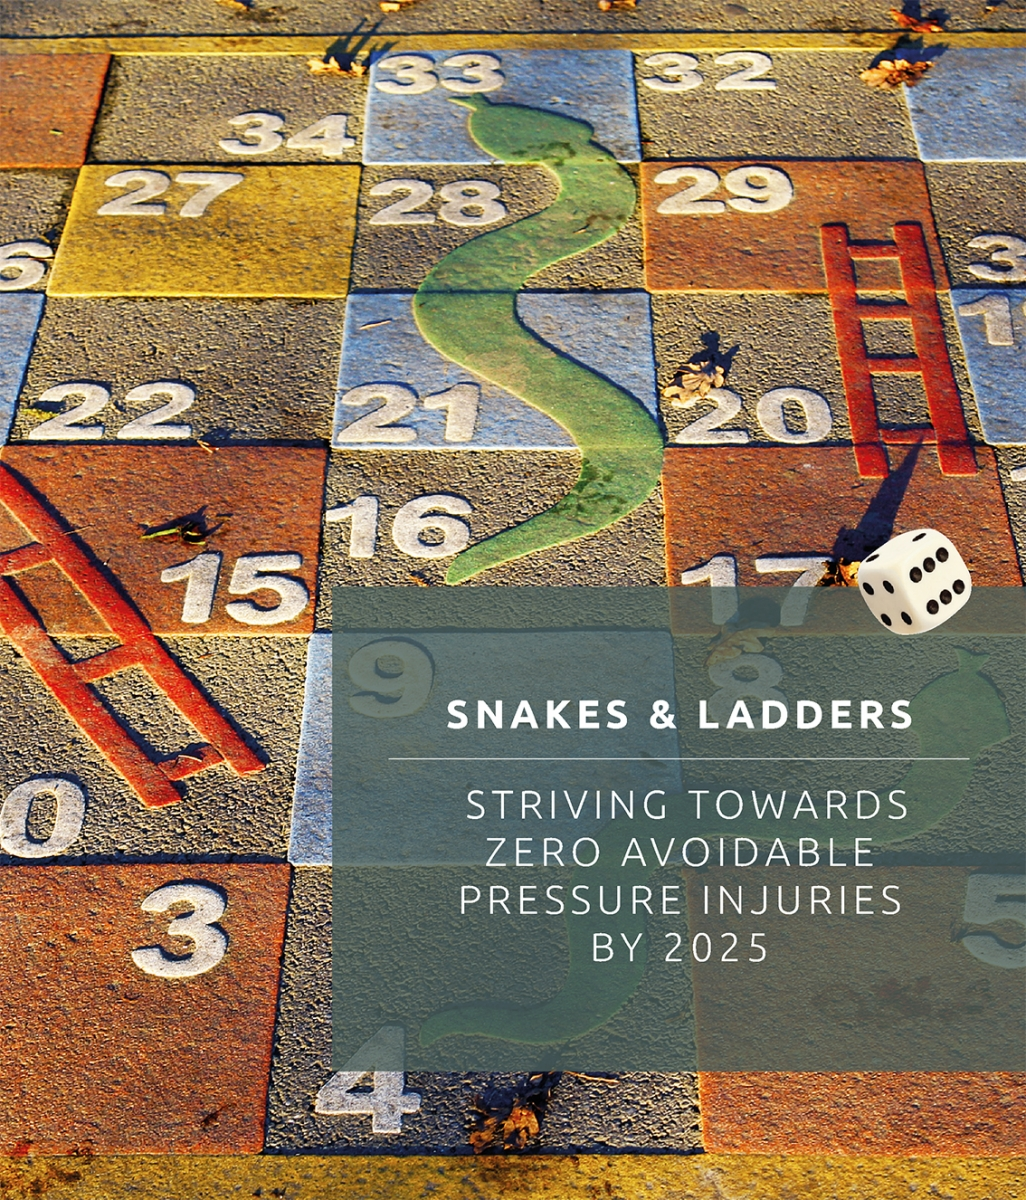 Snakes & Ladders, Pressure Injuries, Curiato Inc